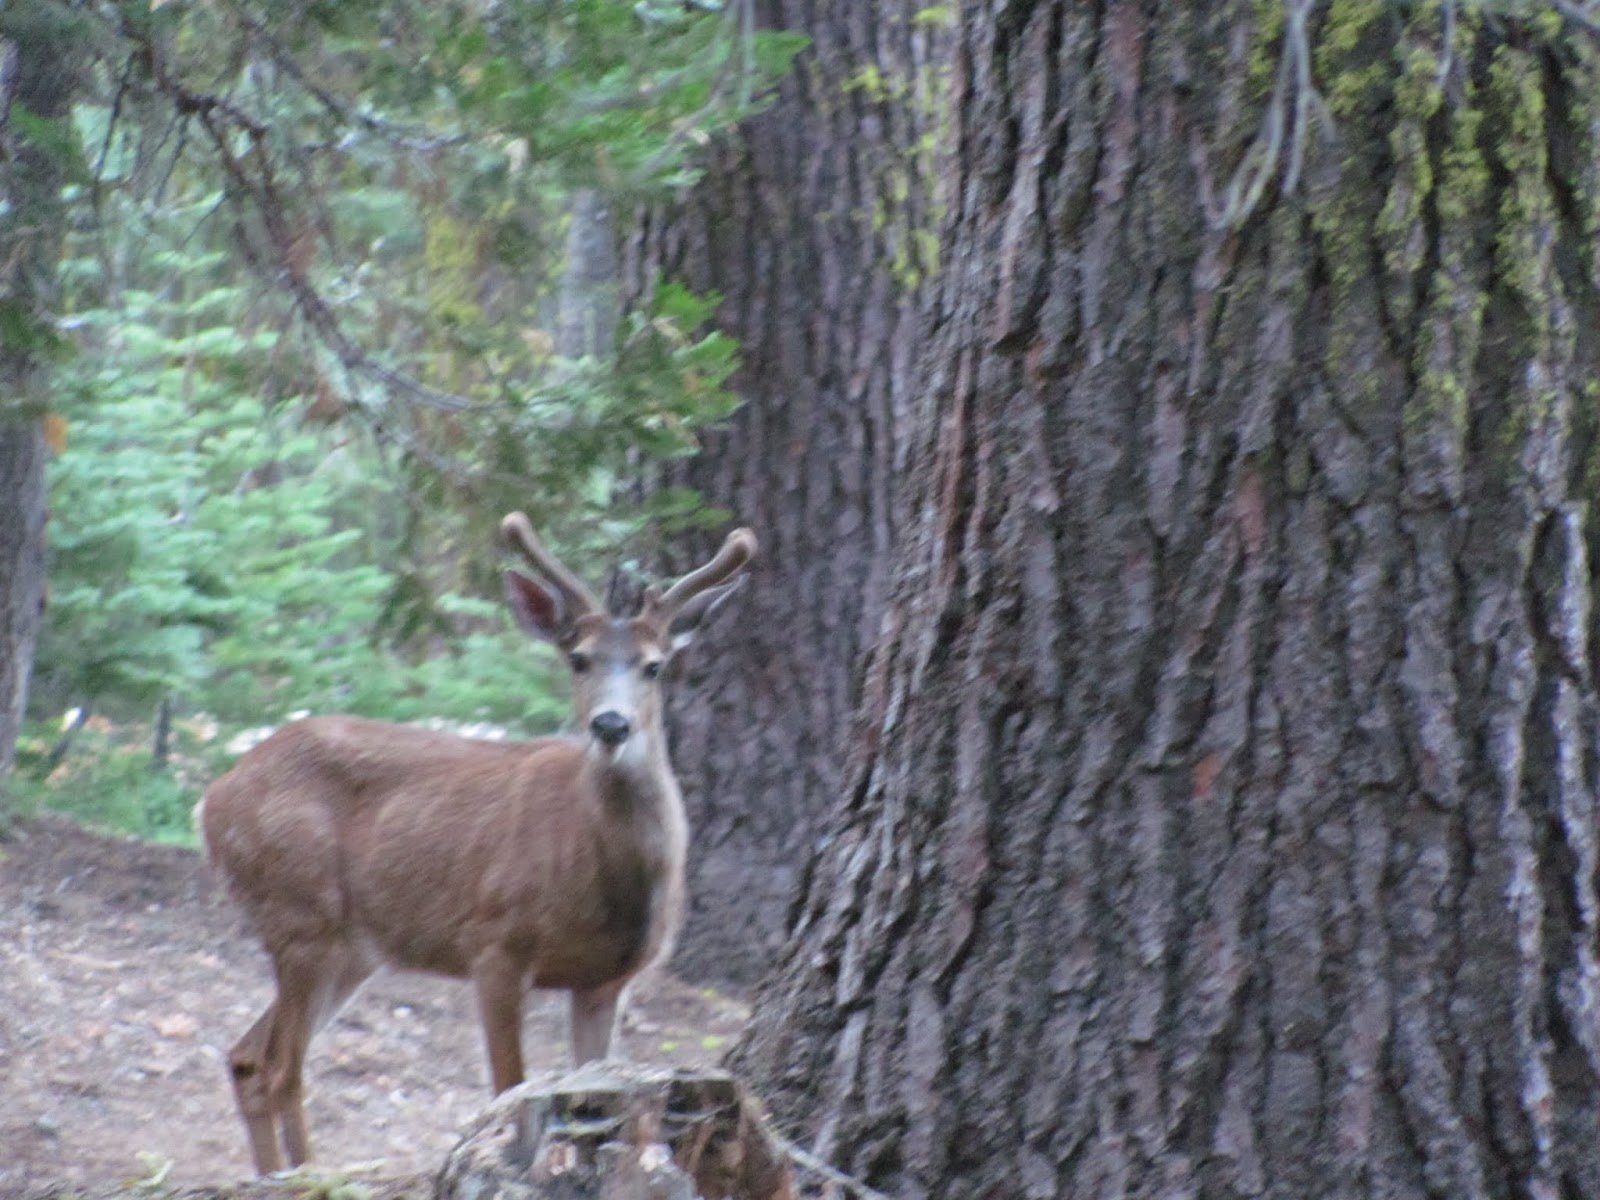 A mule deer buck with velvet antlers watches the campsite from nearby at Yosemite National Park, California